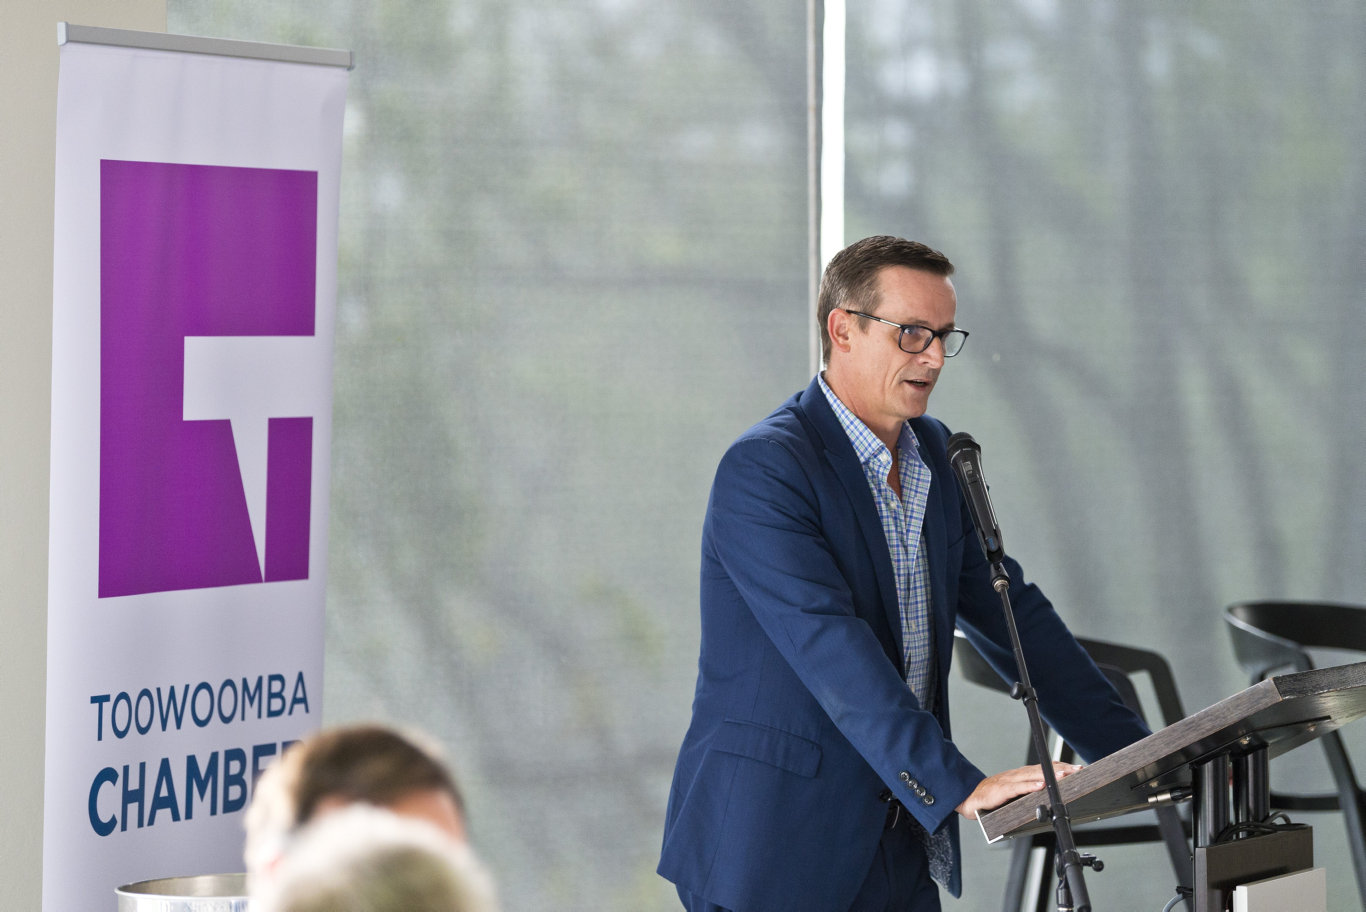 Toowoomba Chamber of Commerce CEO Todd Rohl at the mayoral debate breakfast hosted by Toowoomba Chamber at Picnic Point, Tuesday, March 10, 2020. Picture: Kevin Farmer